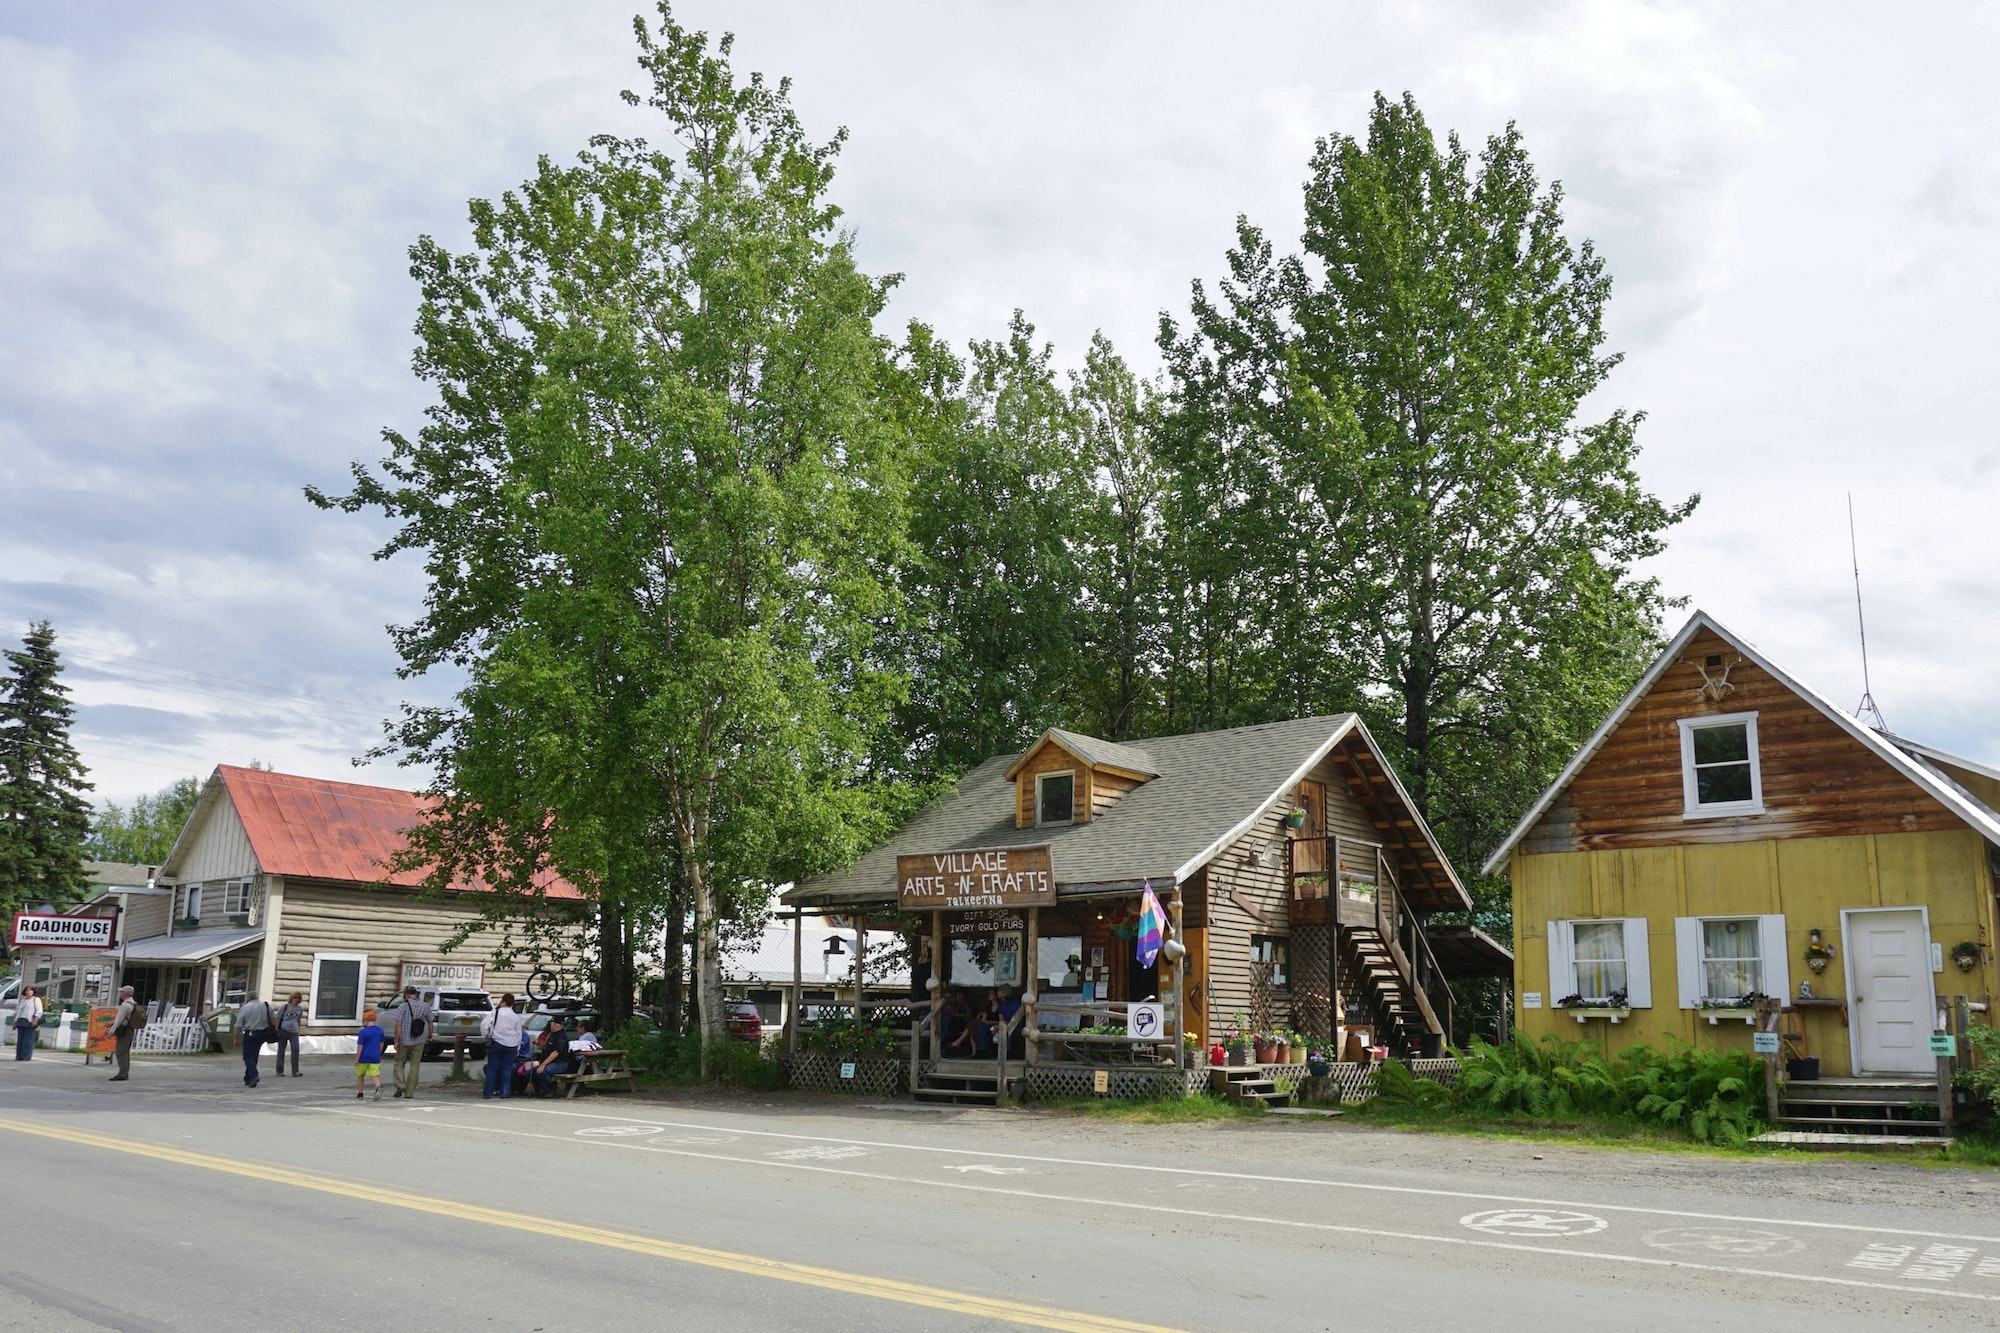 In quirky Talkeetna, visitors can stock up on reindeer meatloaf at the Roadhouse (pictured at left).